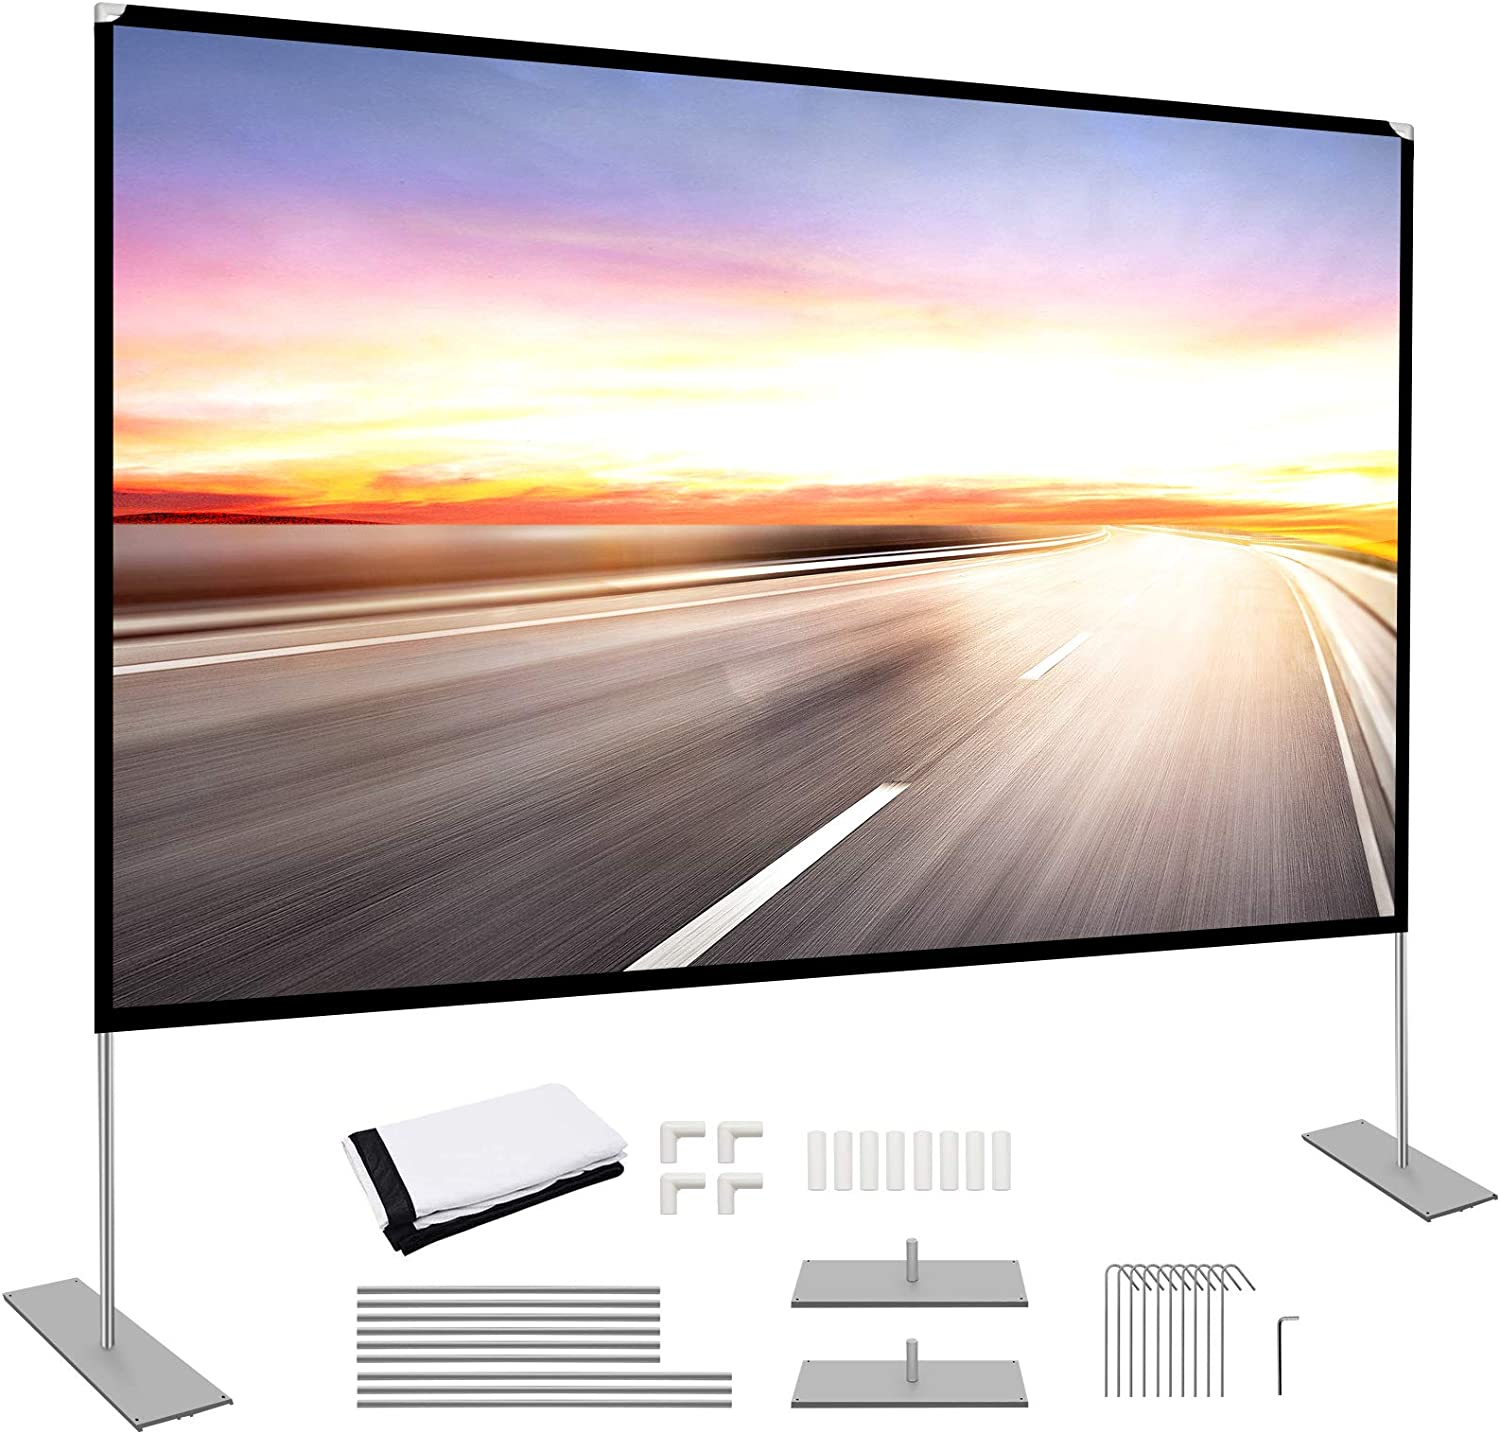 Projector Screen with Stand 100 inch Portable Projection